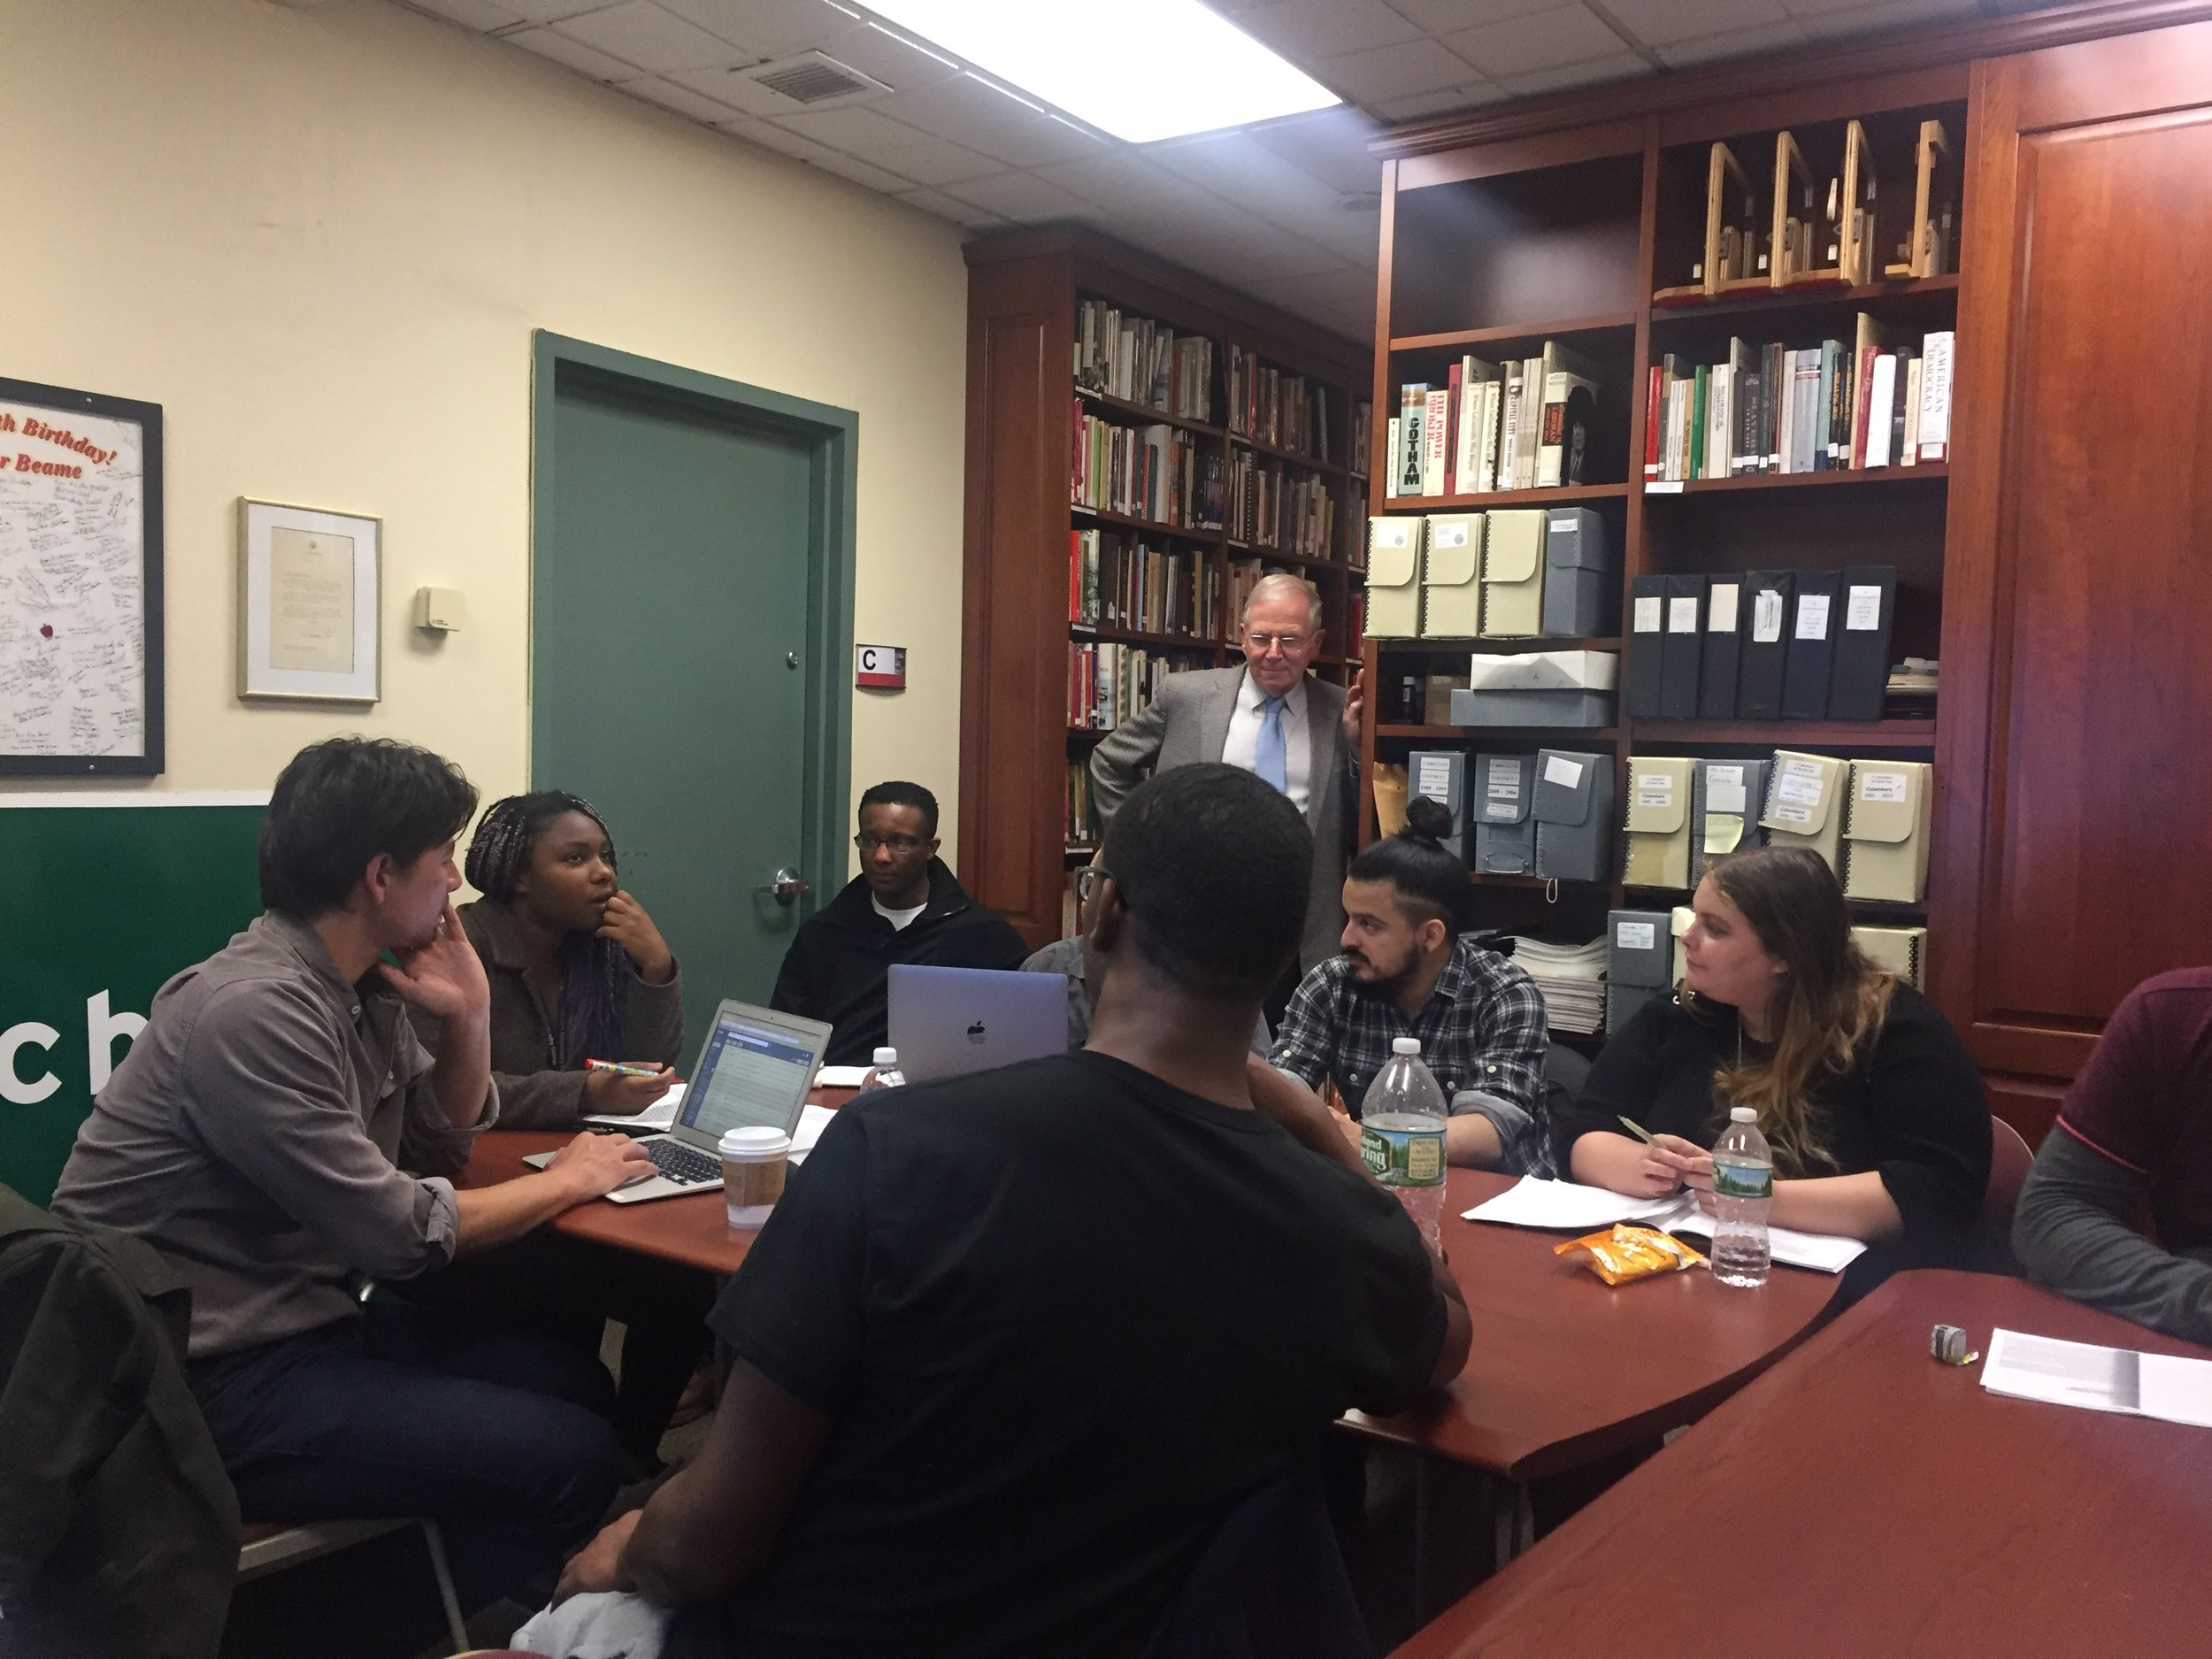 Faculty and staff guide discussions of weekly readings on the history of public housing. Photo by Molly Rosner.